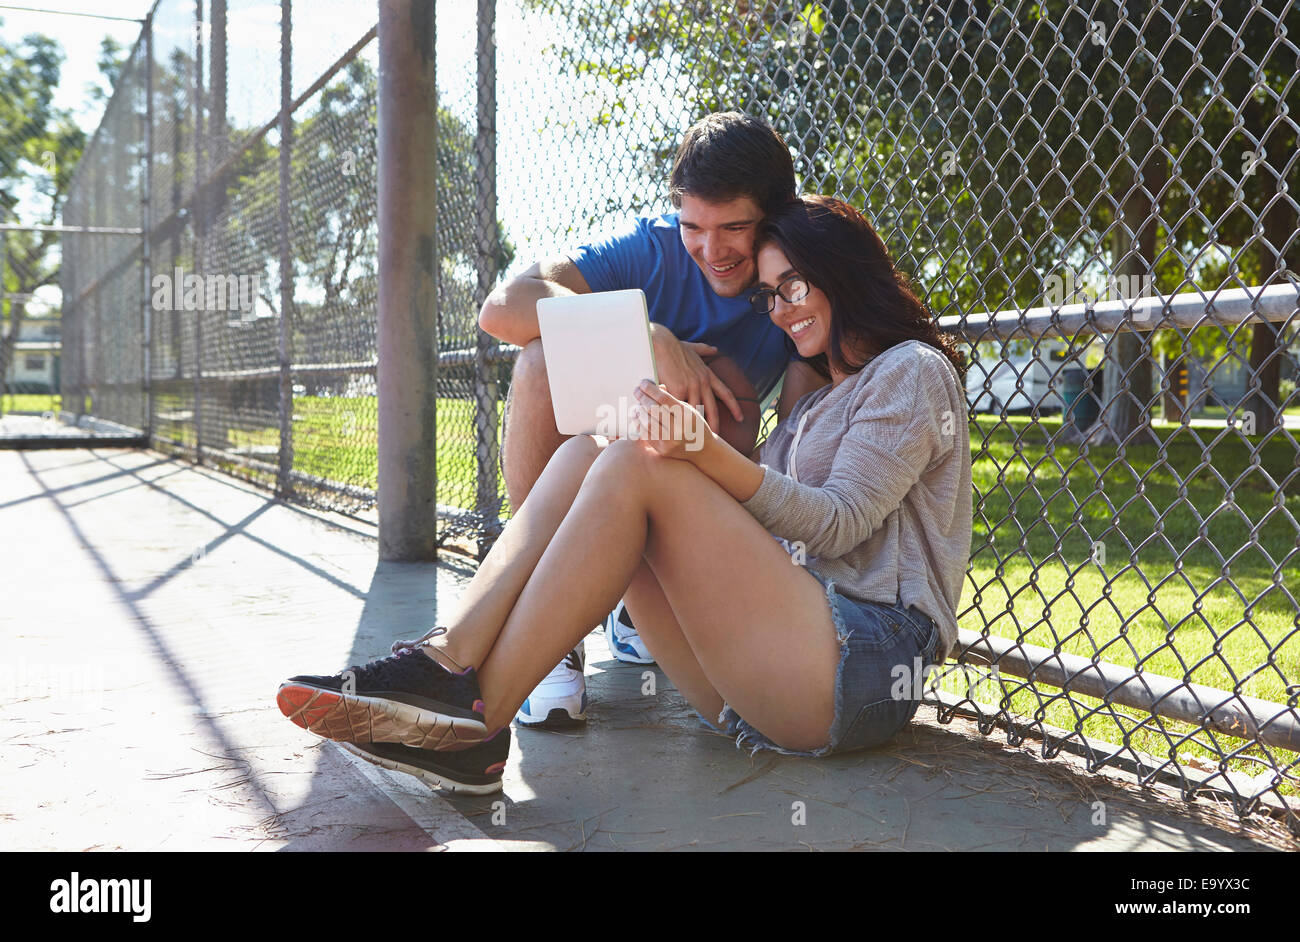 Young couple using digital tablet by wire fence - Stock Image